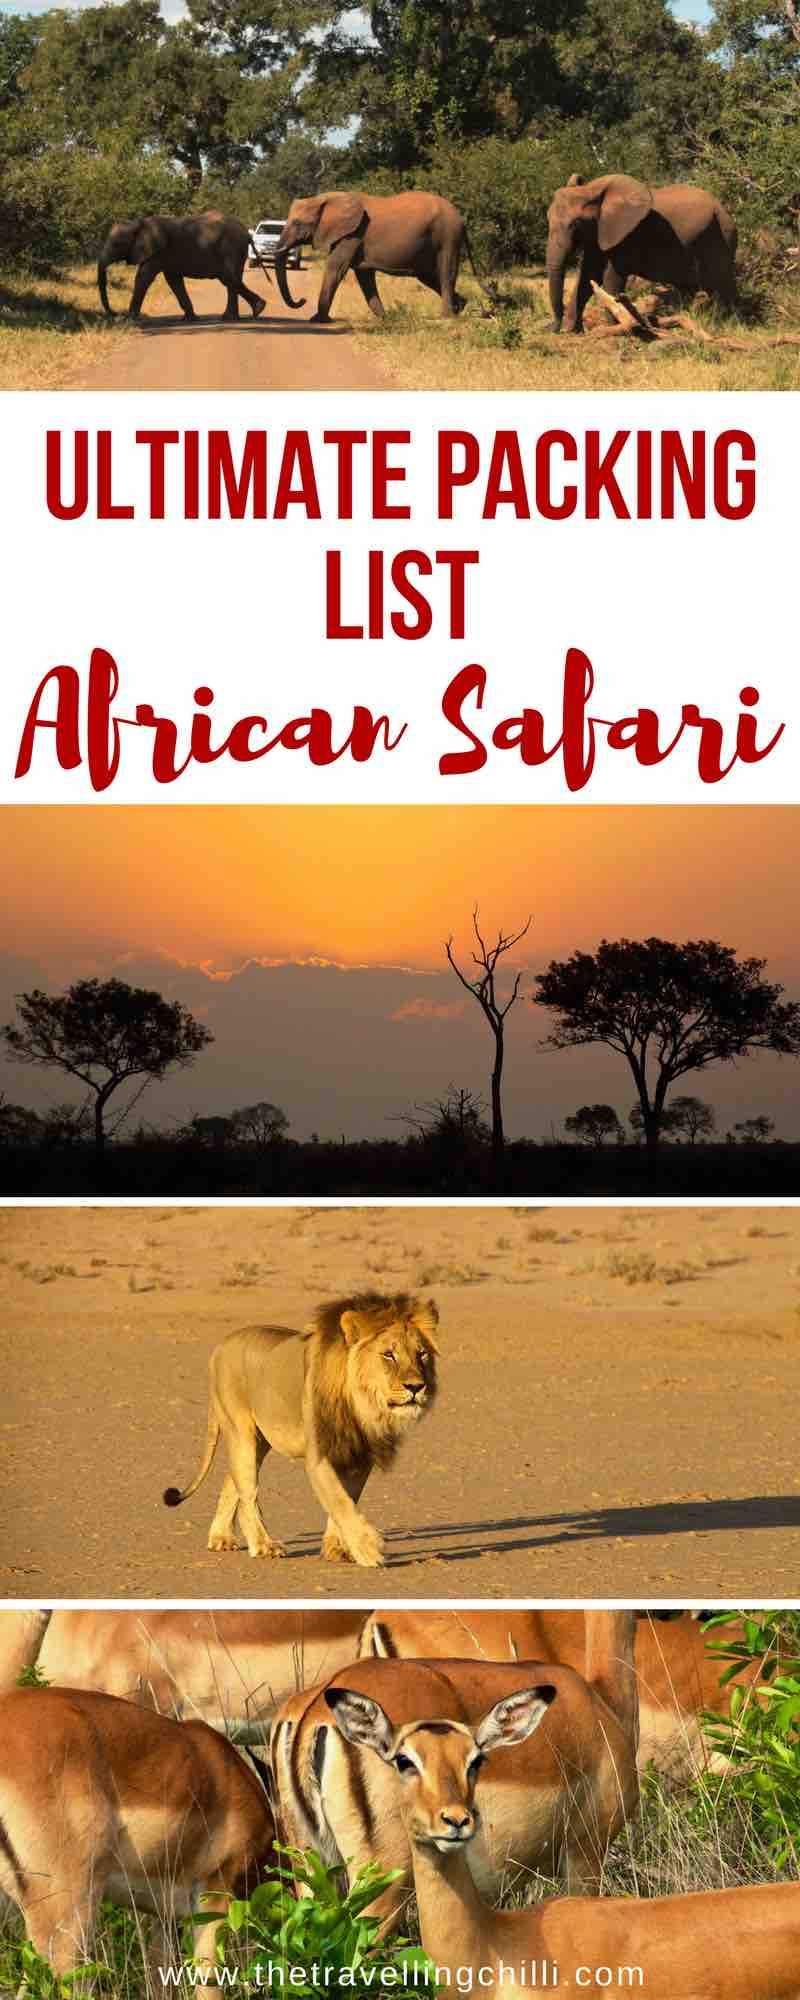 Ultimate packing list for an African safari |packing list safari in africa | african safari packing list | packing list African safari